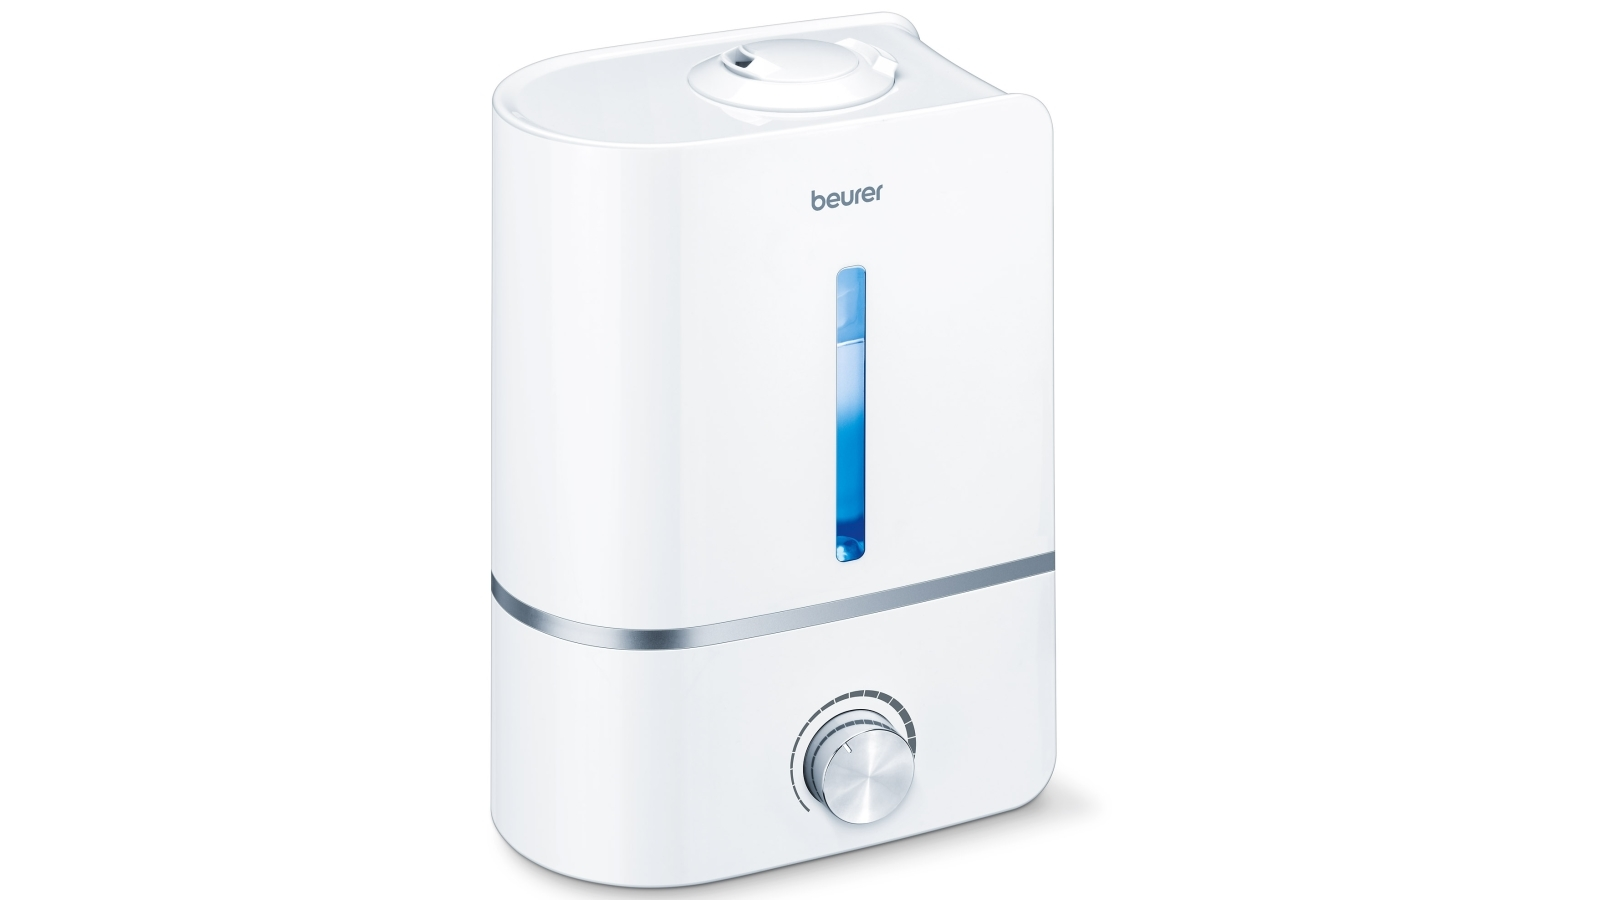 Image of Beurer LB45 Air Humidifier with Aromatherapy & Water Filter